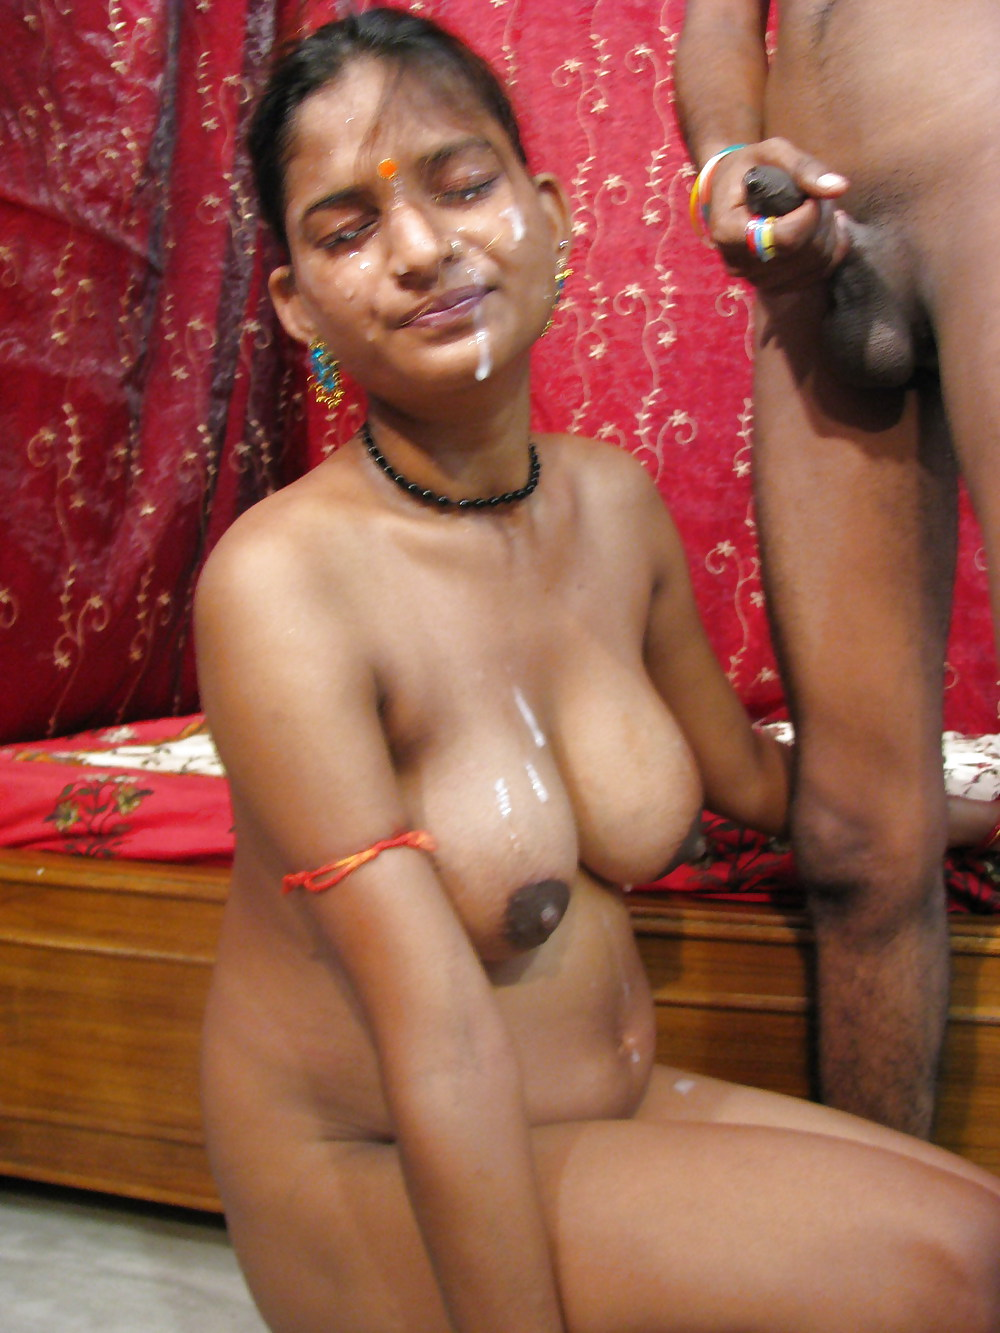 campbell-nude-sexy-young-indian-cum-facial